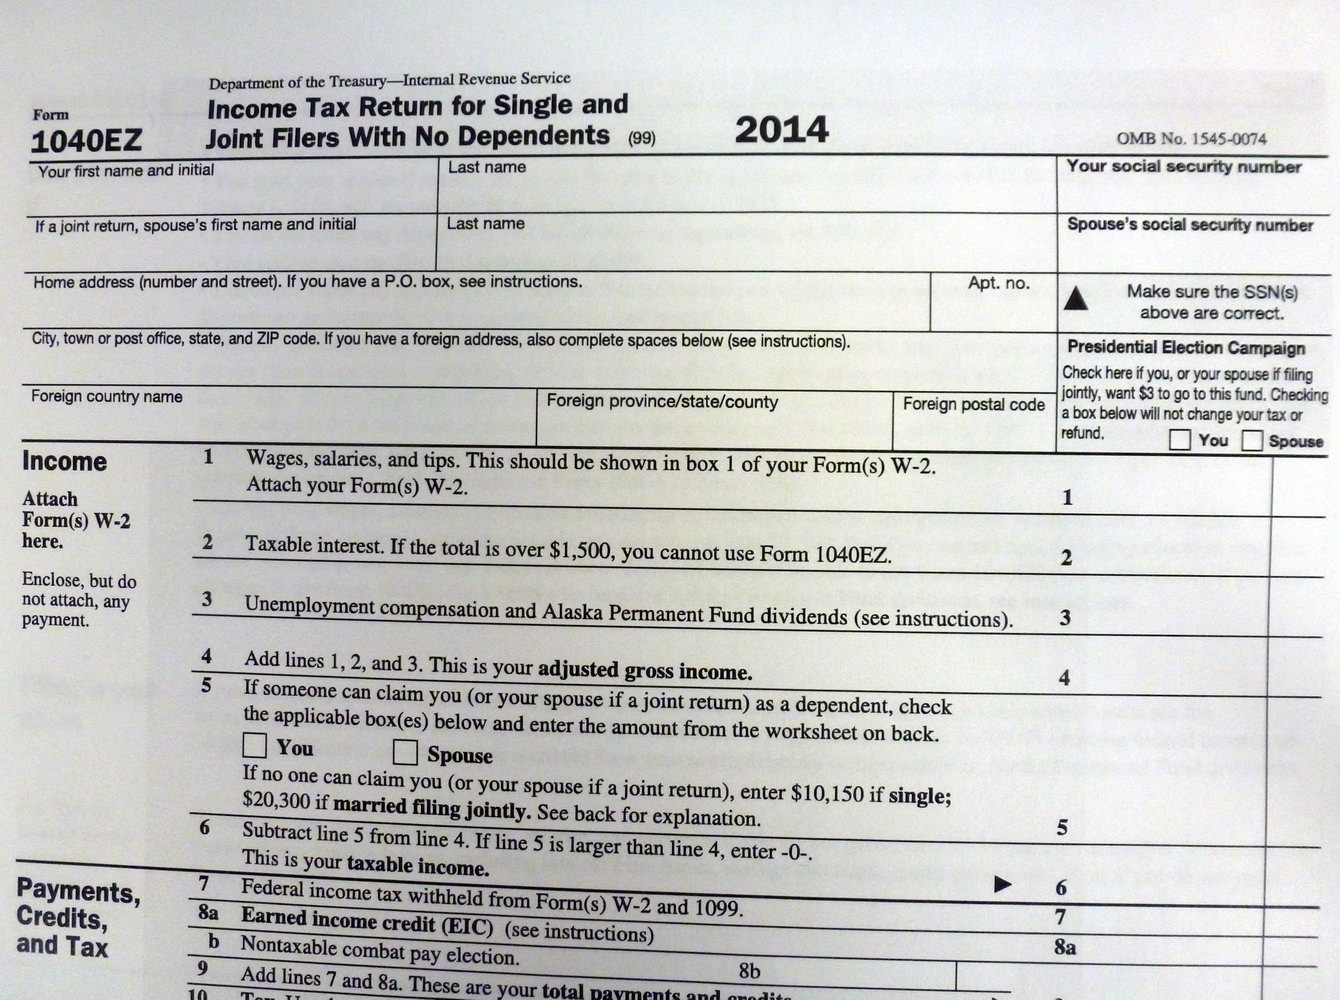 2014 Federal Tax Return Form 1040